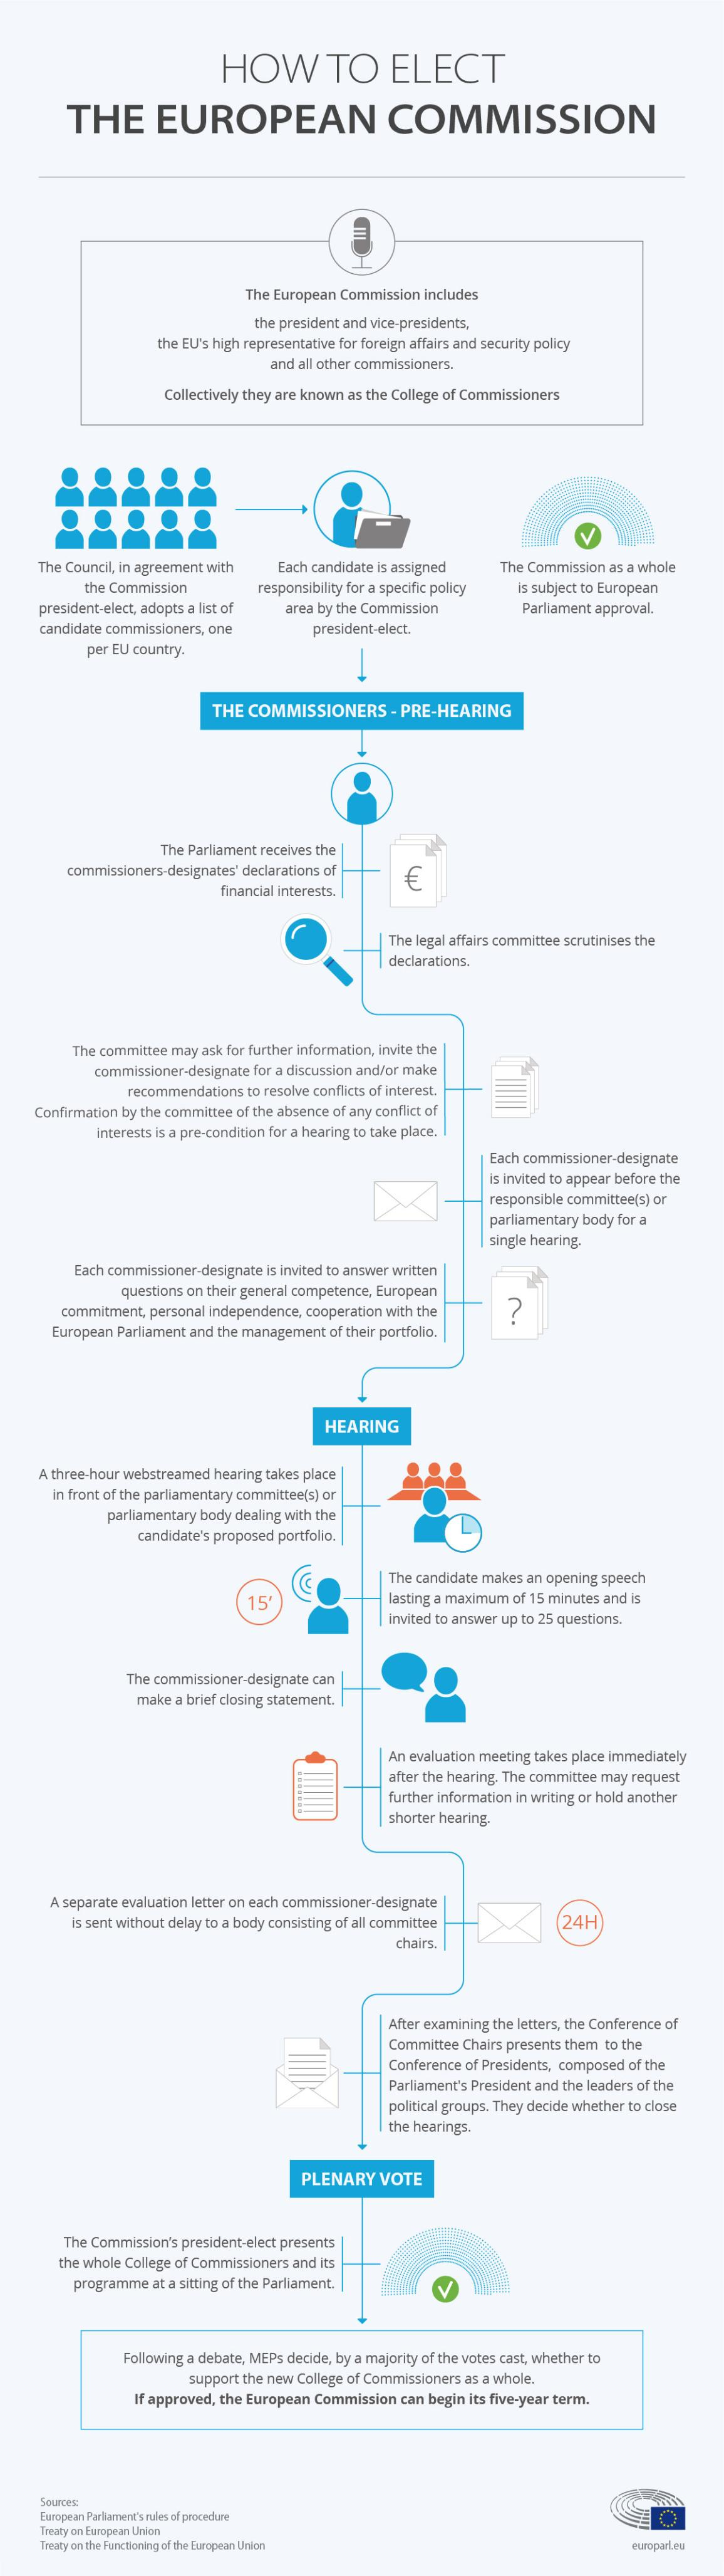 infographic on how to elect the European Commission